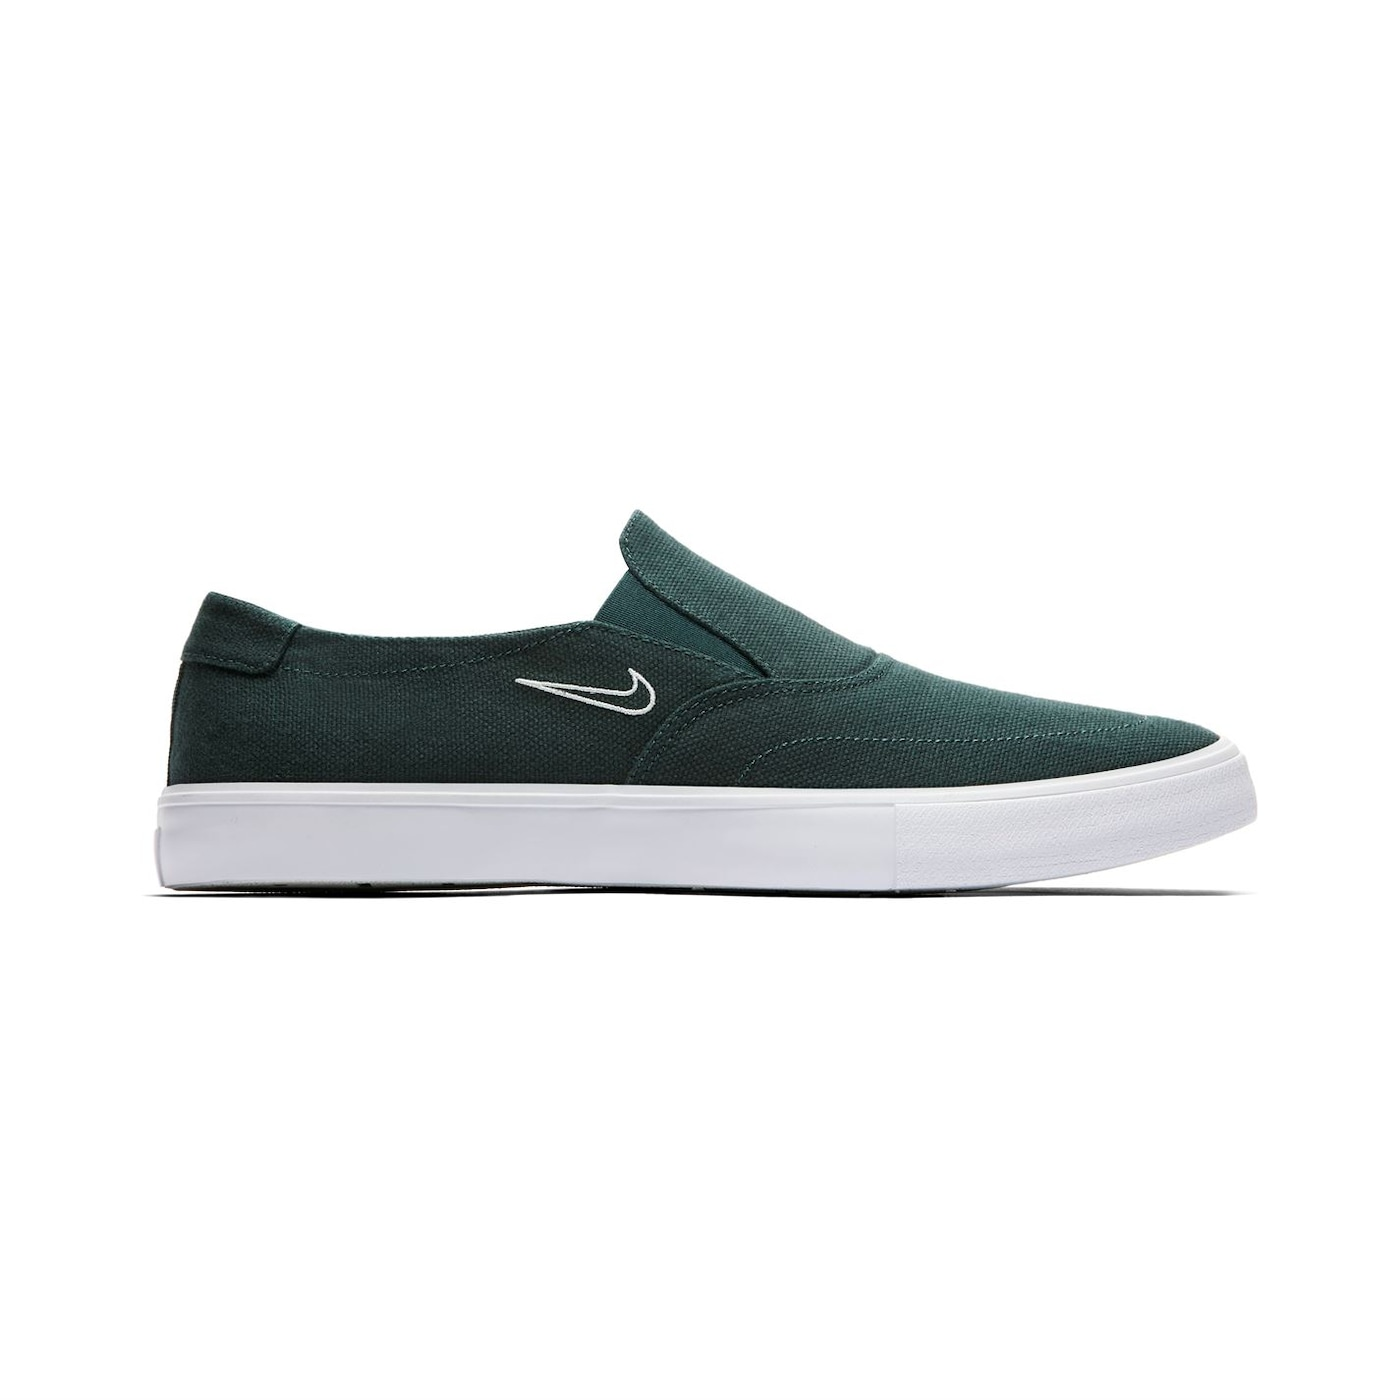 Nike SB Portmore Slip Mens Skate Shoes